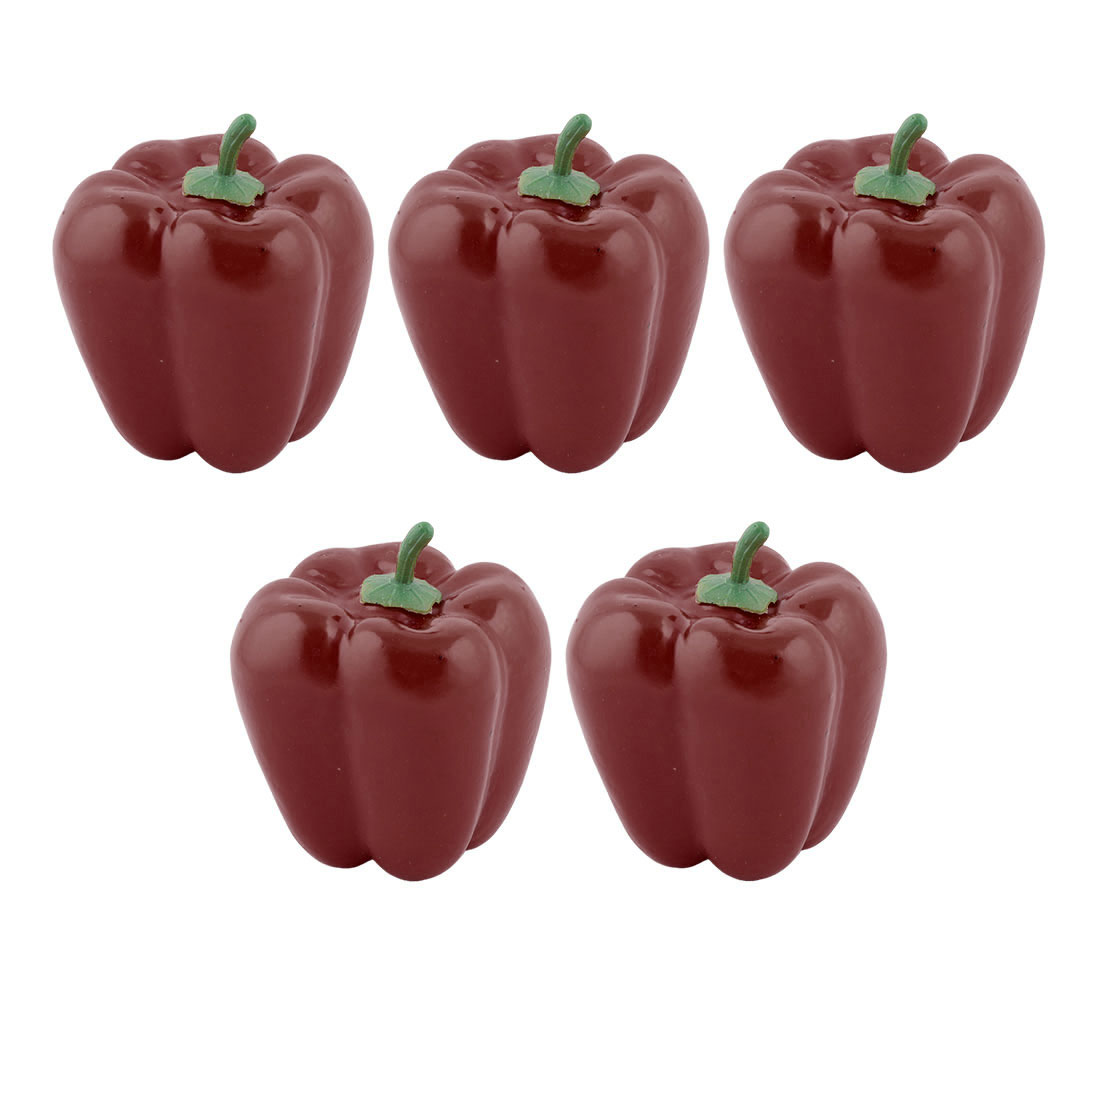 Home Plastic Desk Table Decoration Simulation Artificial Vegetable Sweet Pepper 5 Pcs